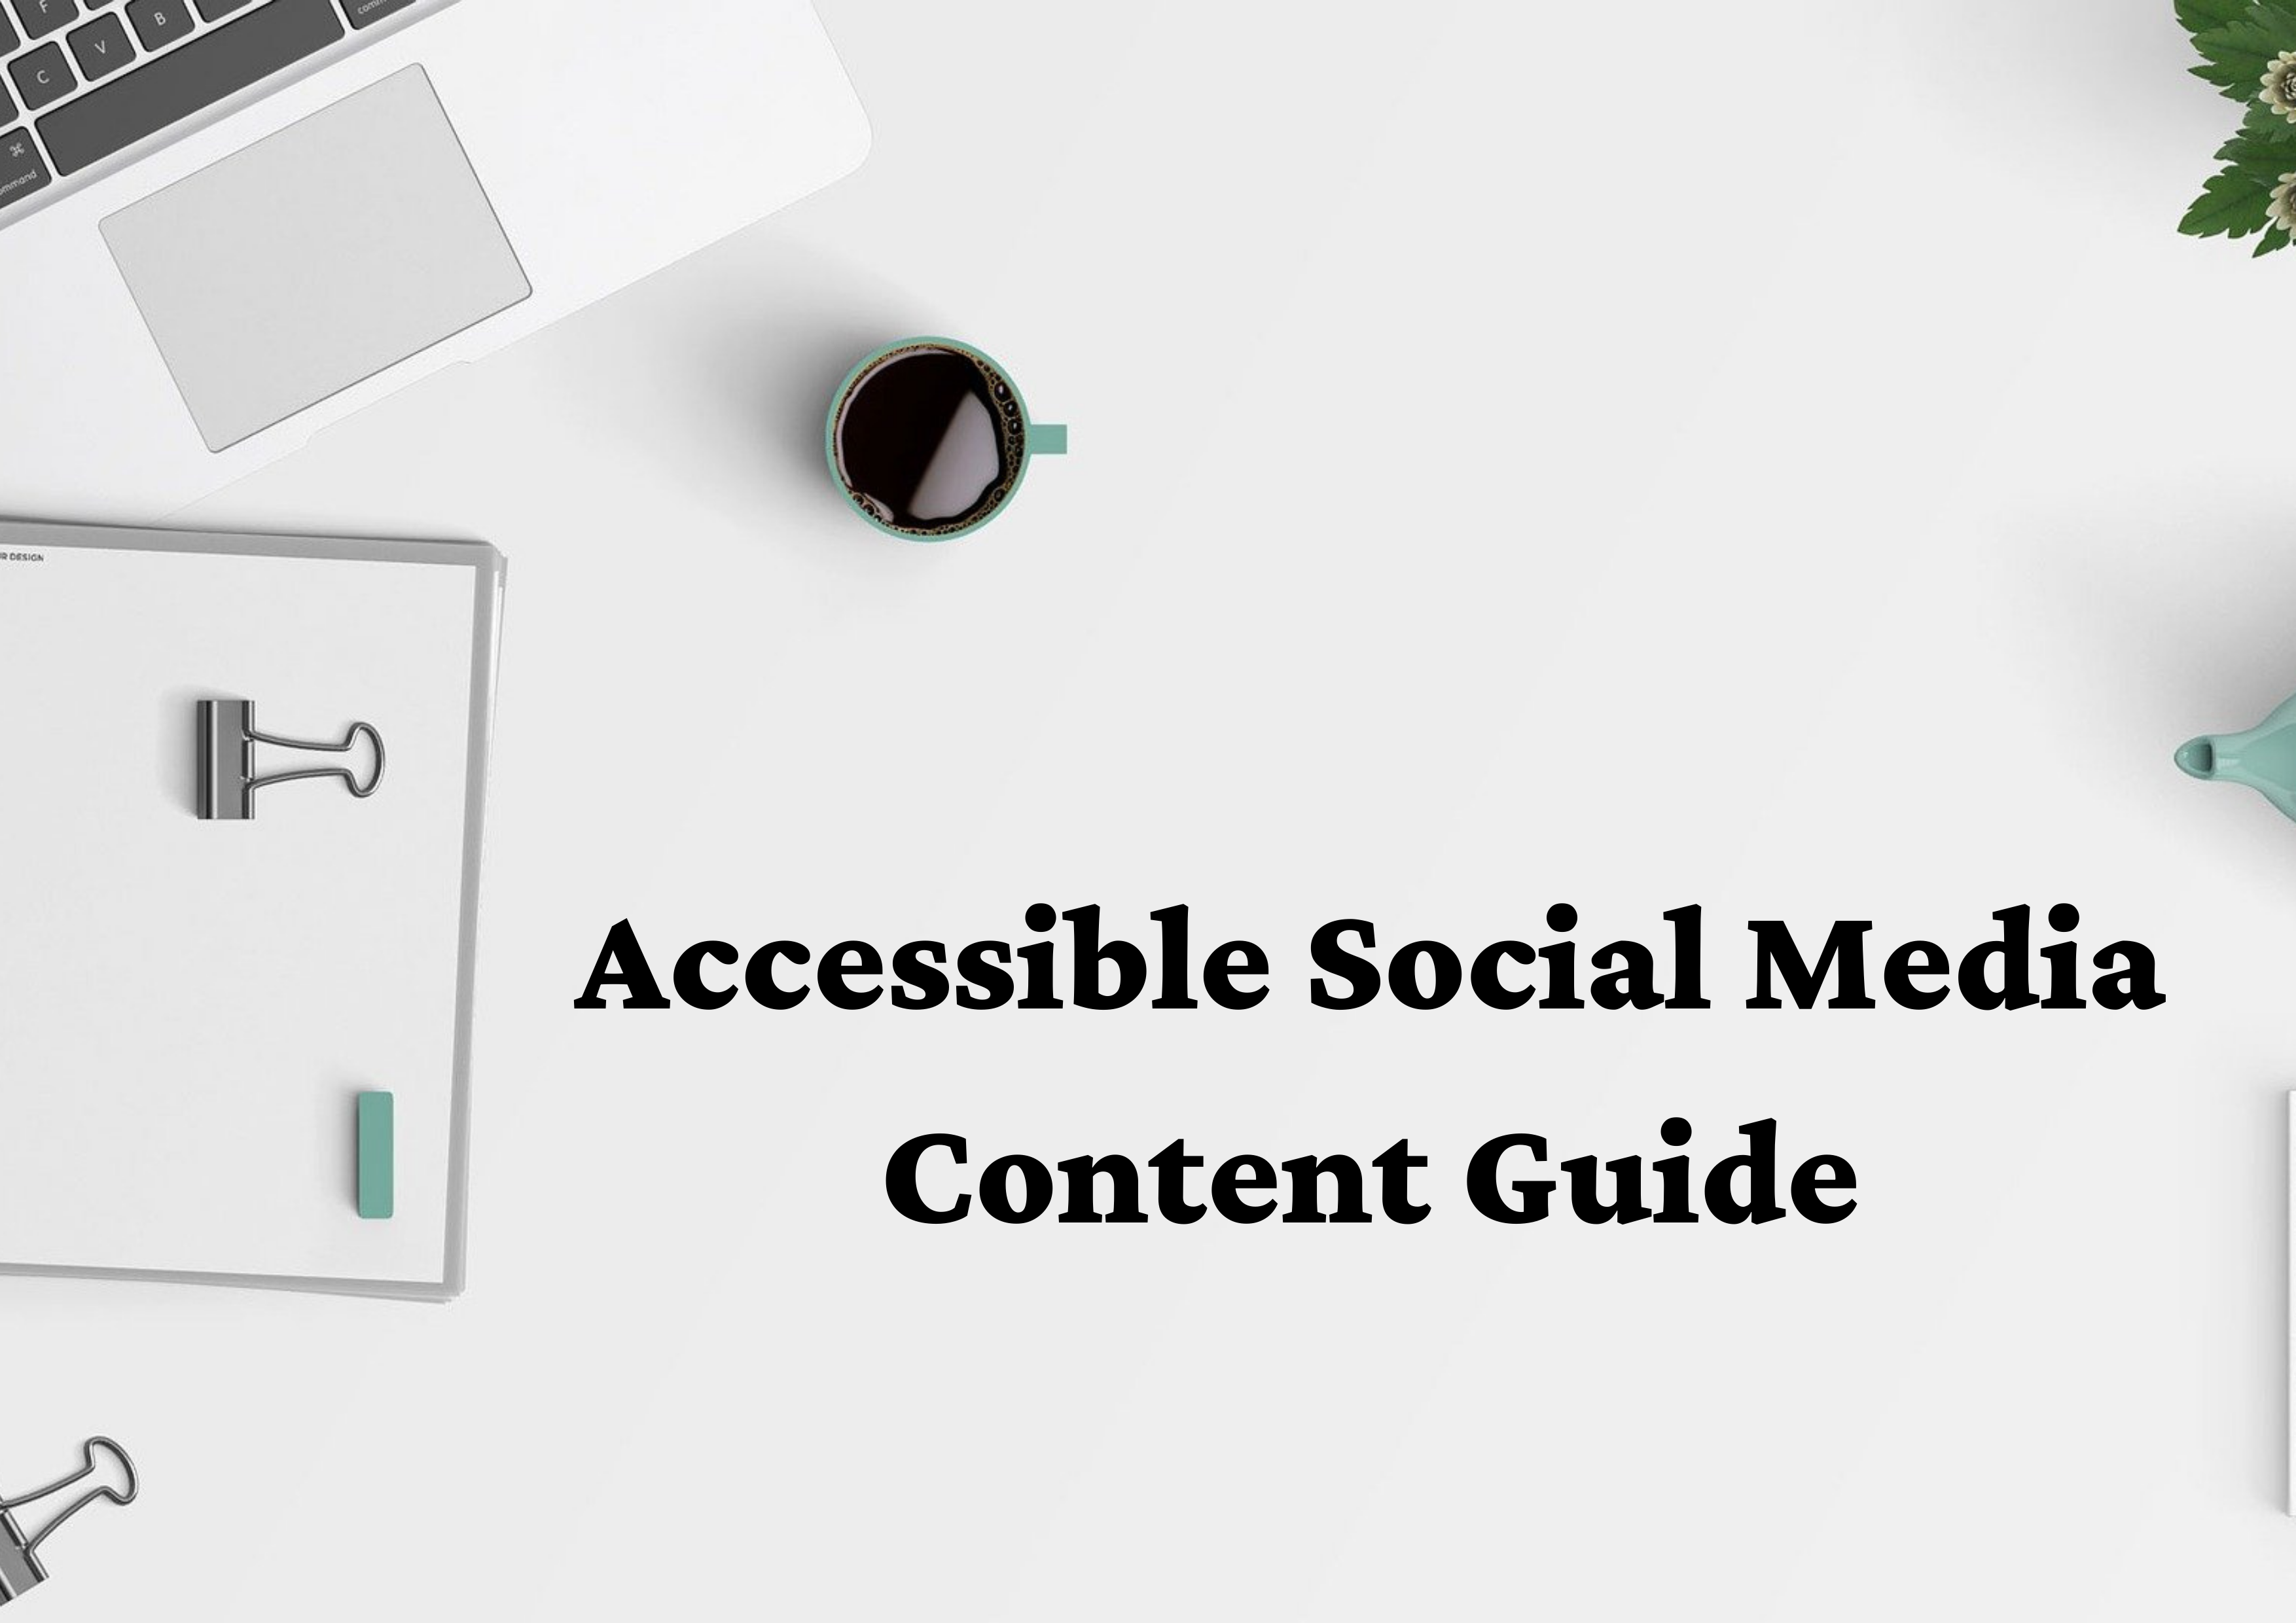 How to creat accessible social media content for instagram, TikTok, Facebook, twitter, Pinterest